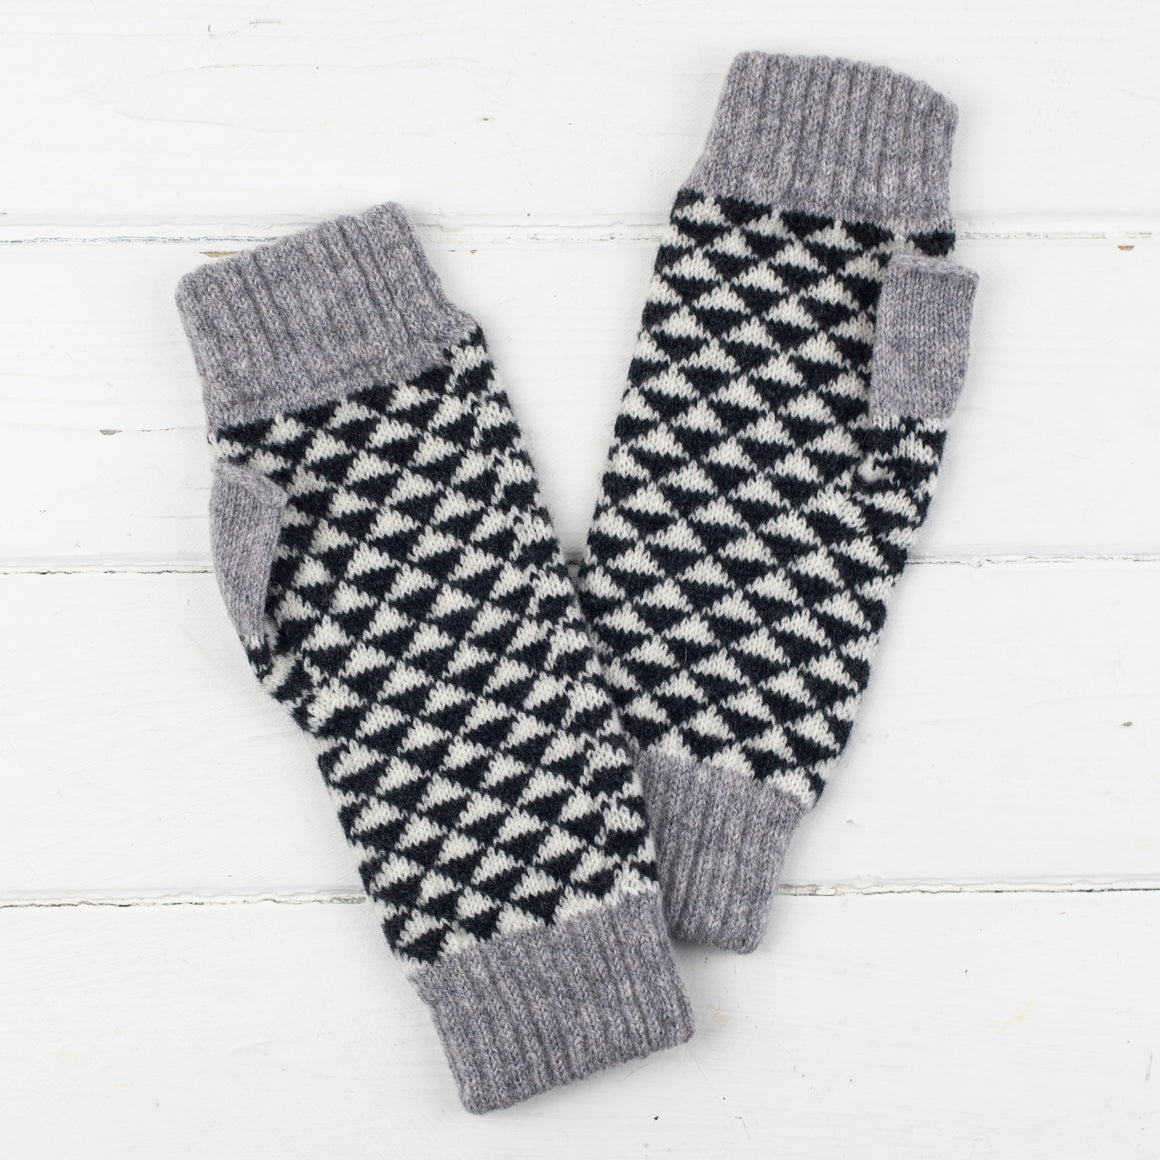 Fingerless mitts - small size